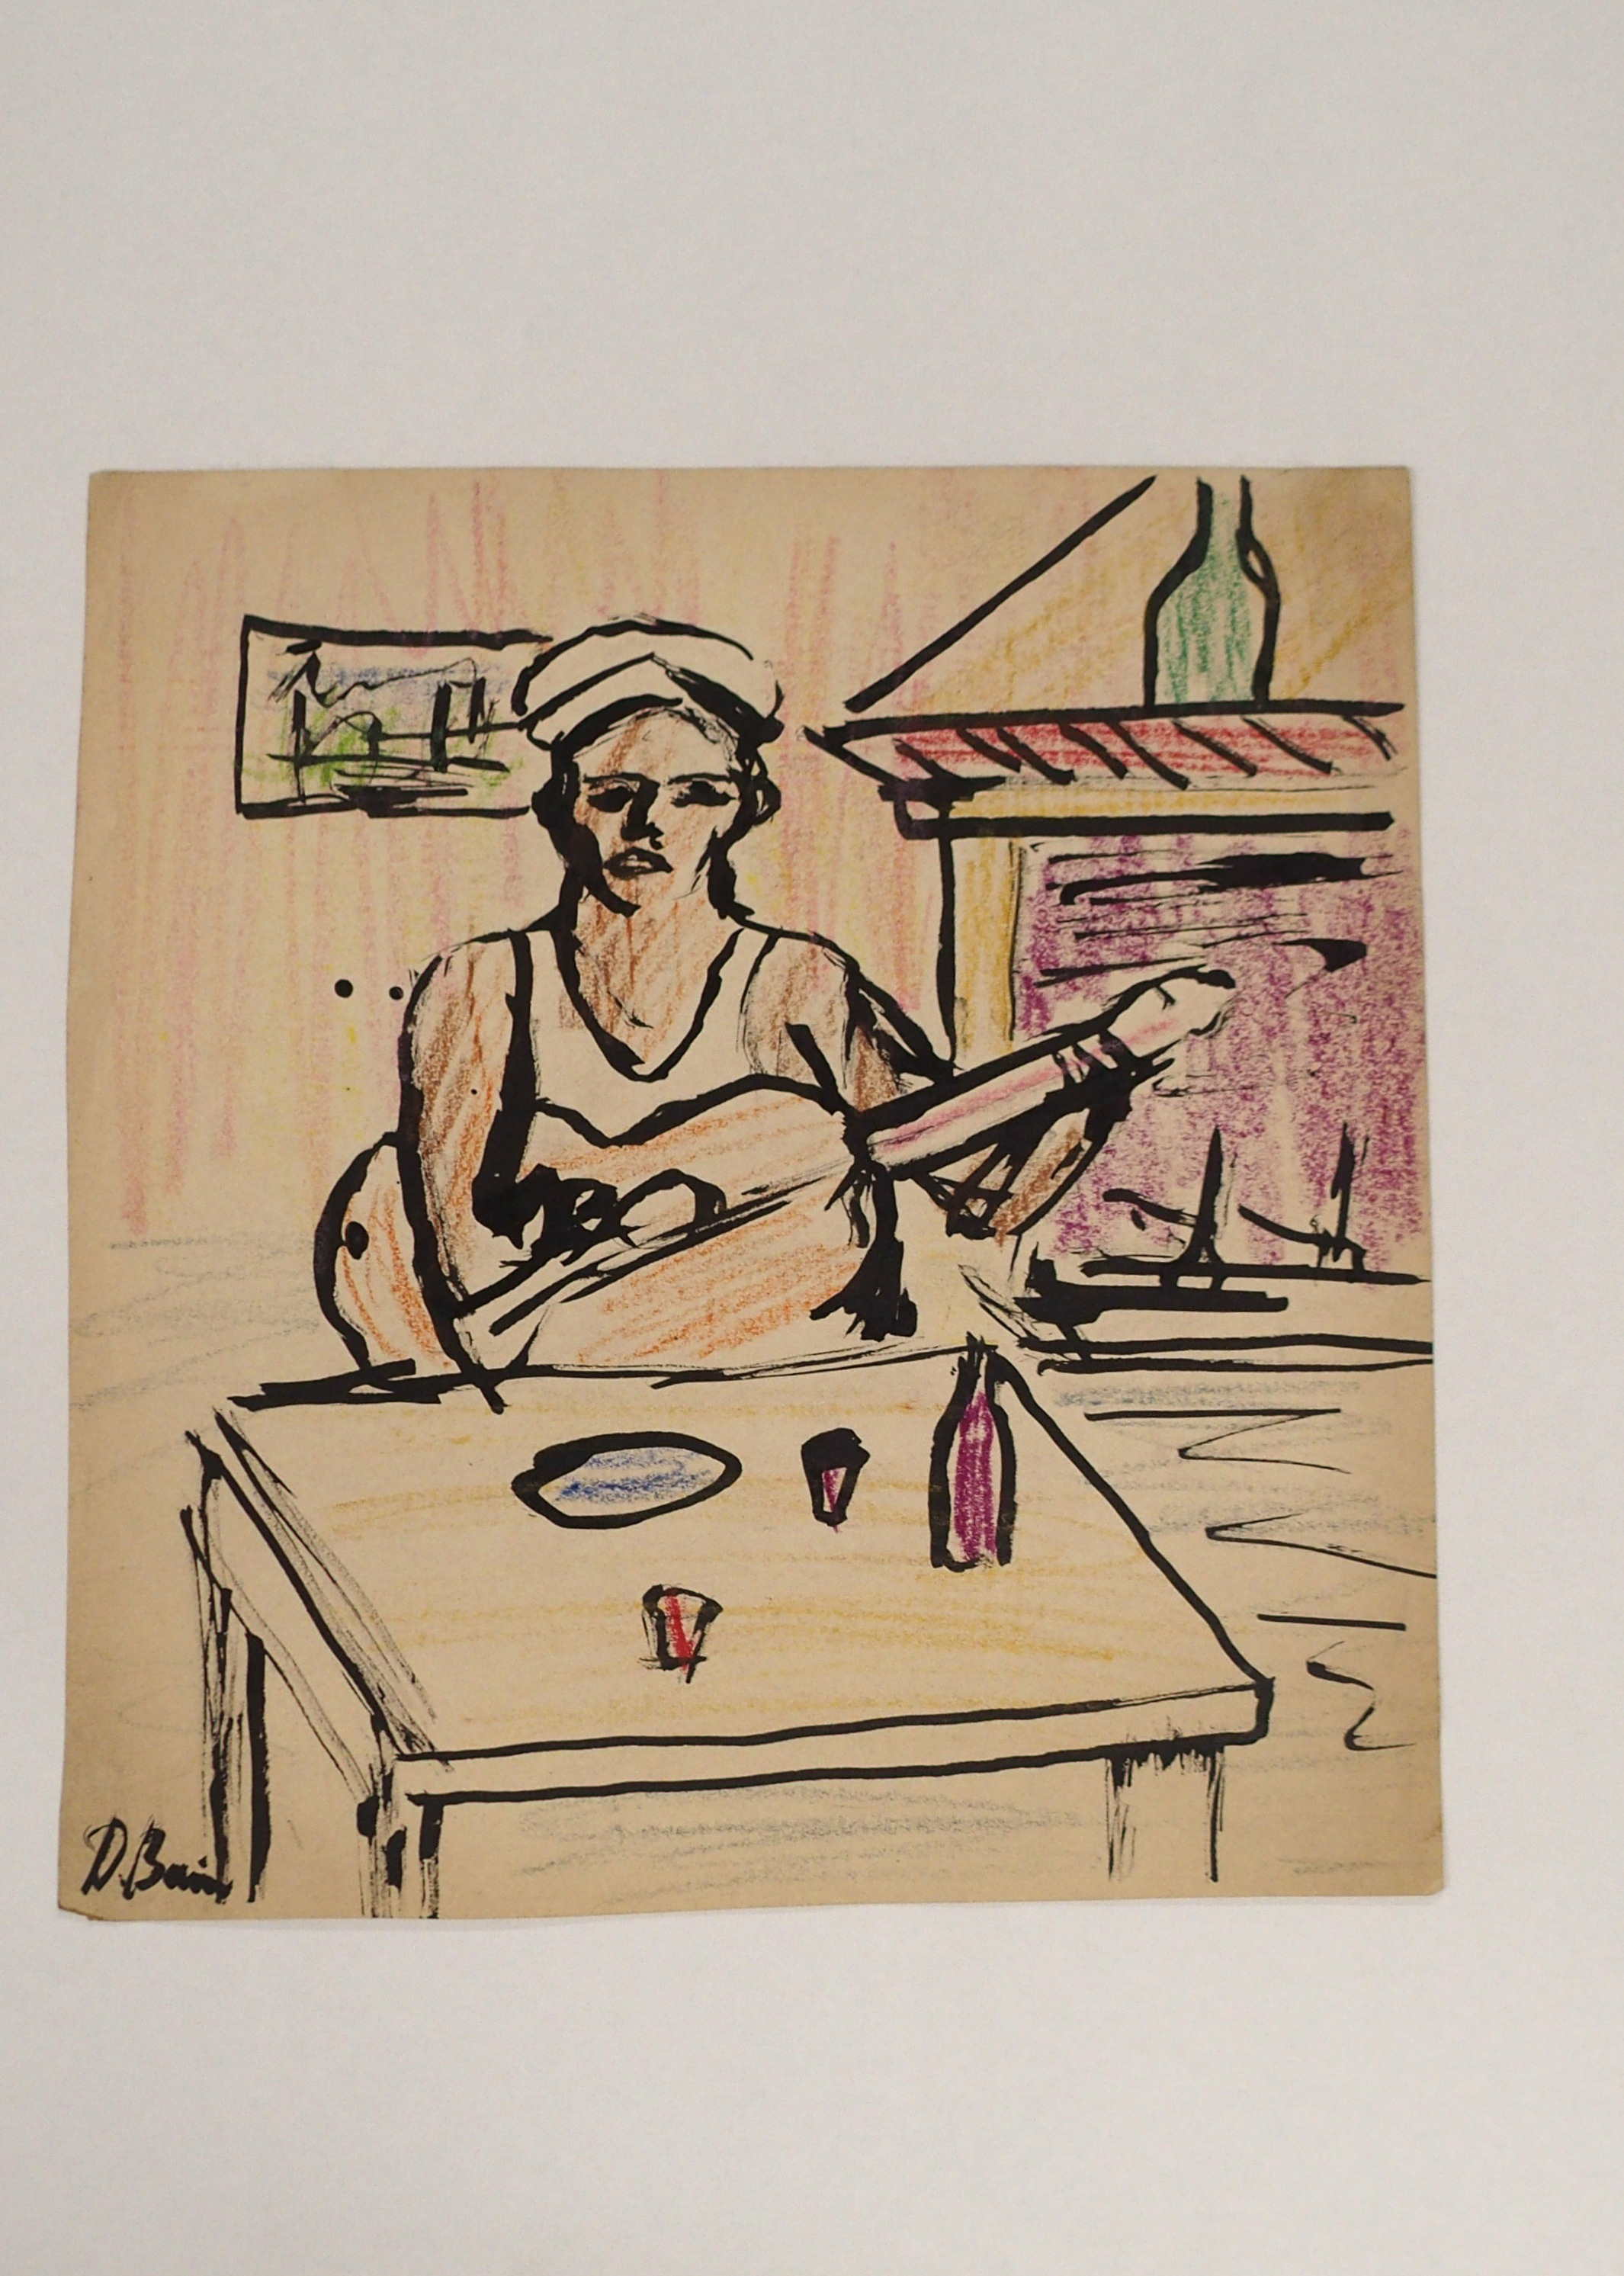 •DONALD BAIN (SCOTTISH 1904-1979) SAILOR WITH GUITAR Ink and coloured wax crayon, signed, 33 x - Image 4 of 4